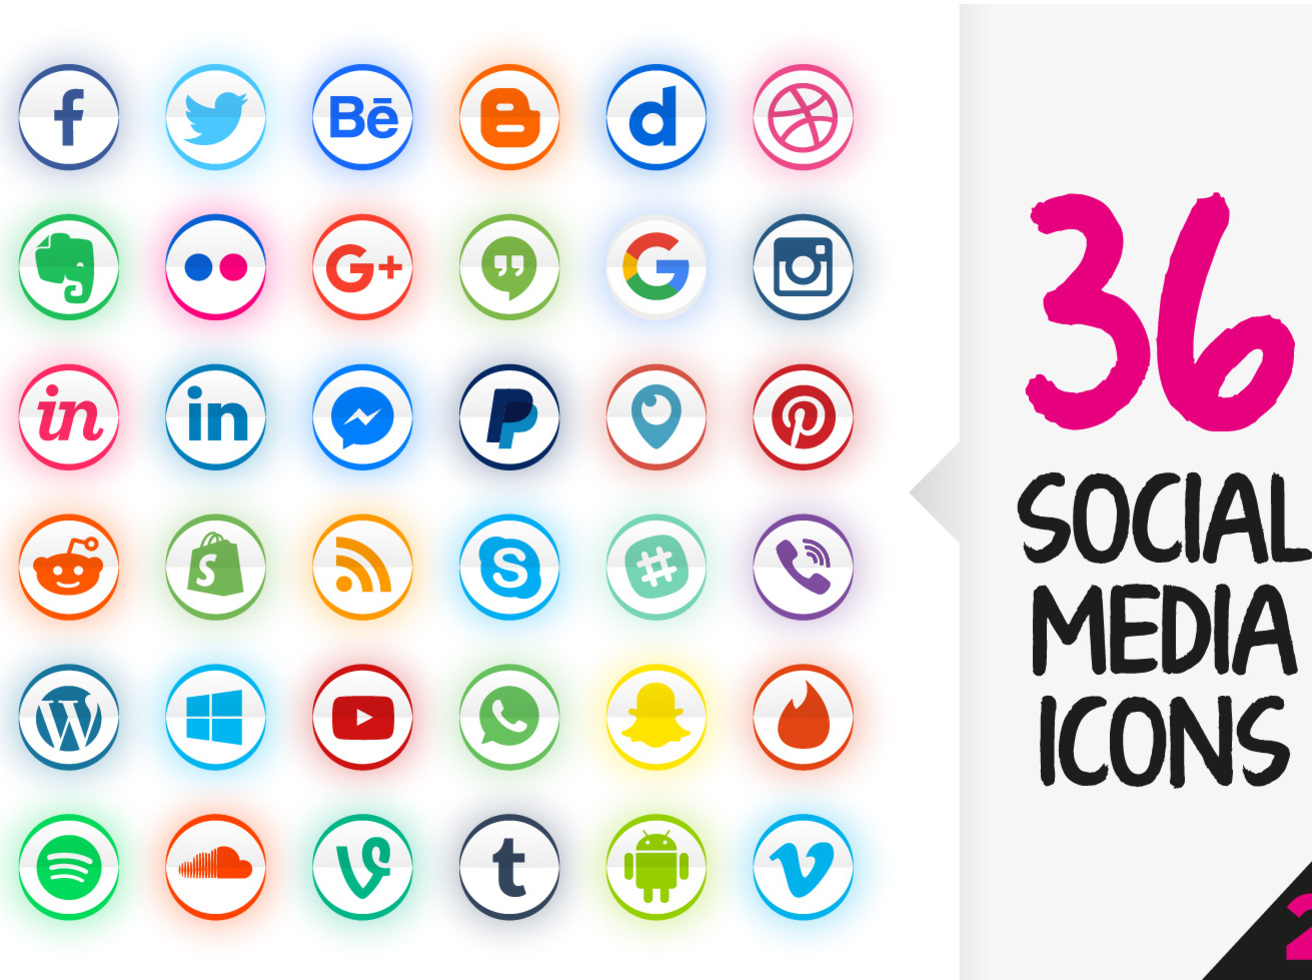 69d9b4fdc5 Social Media Icons Pack Free Vector Art   Graphics